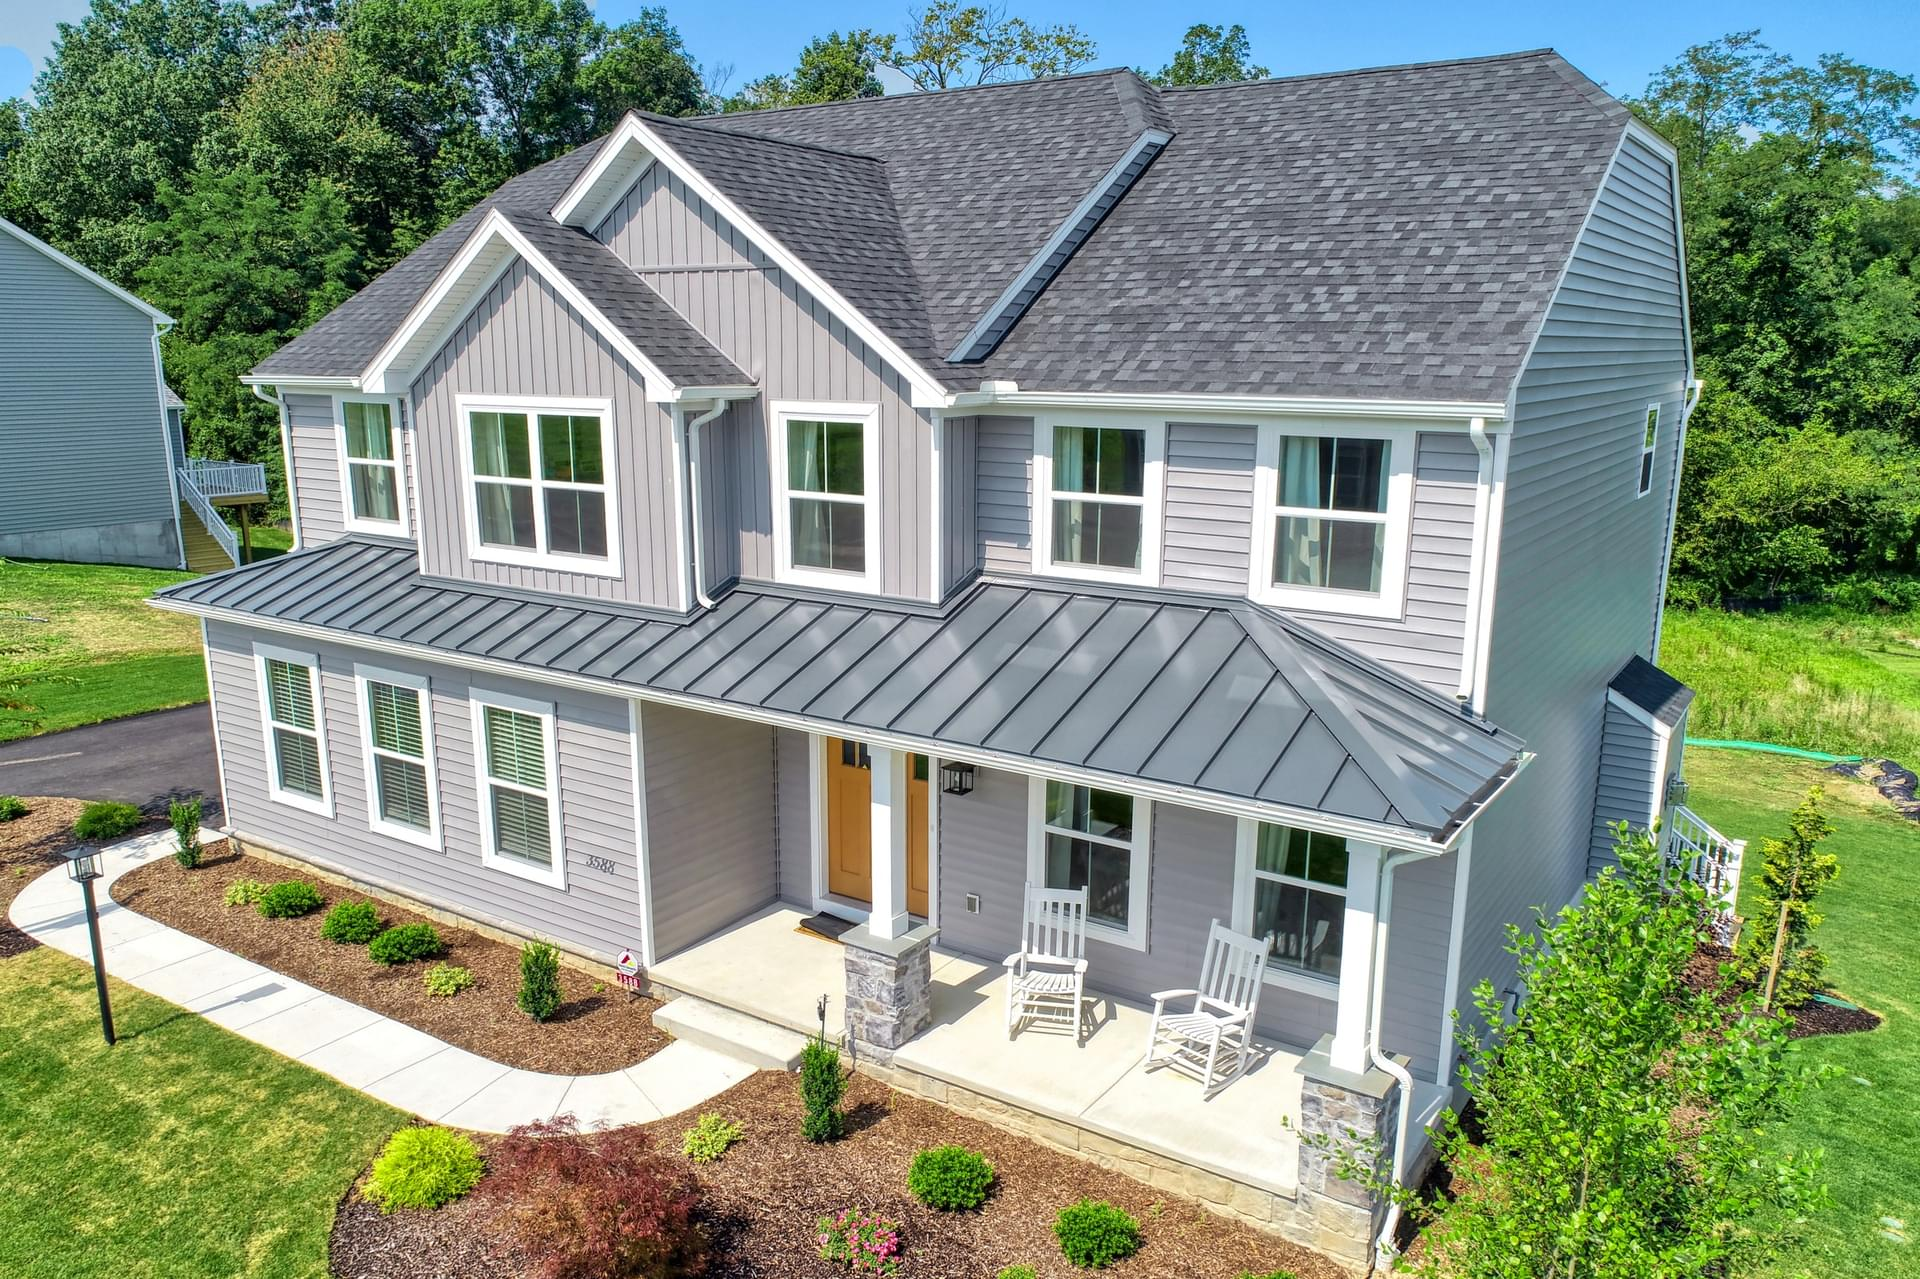 Berks Homes in 362 Sweitzer #LOT 2, Sinking Spring, PA 19608 PA